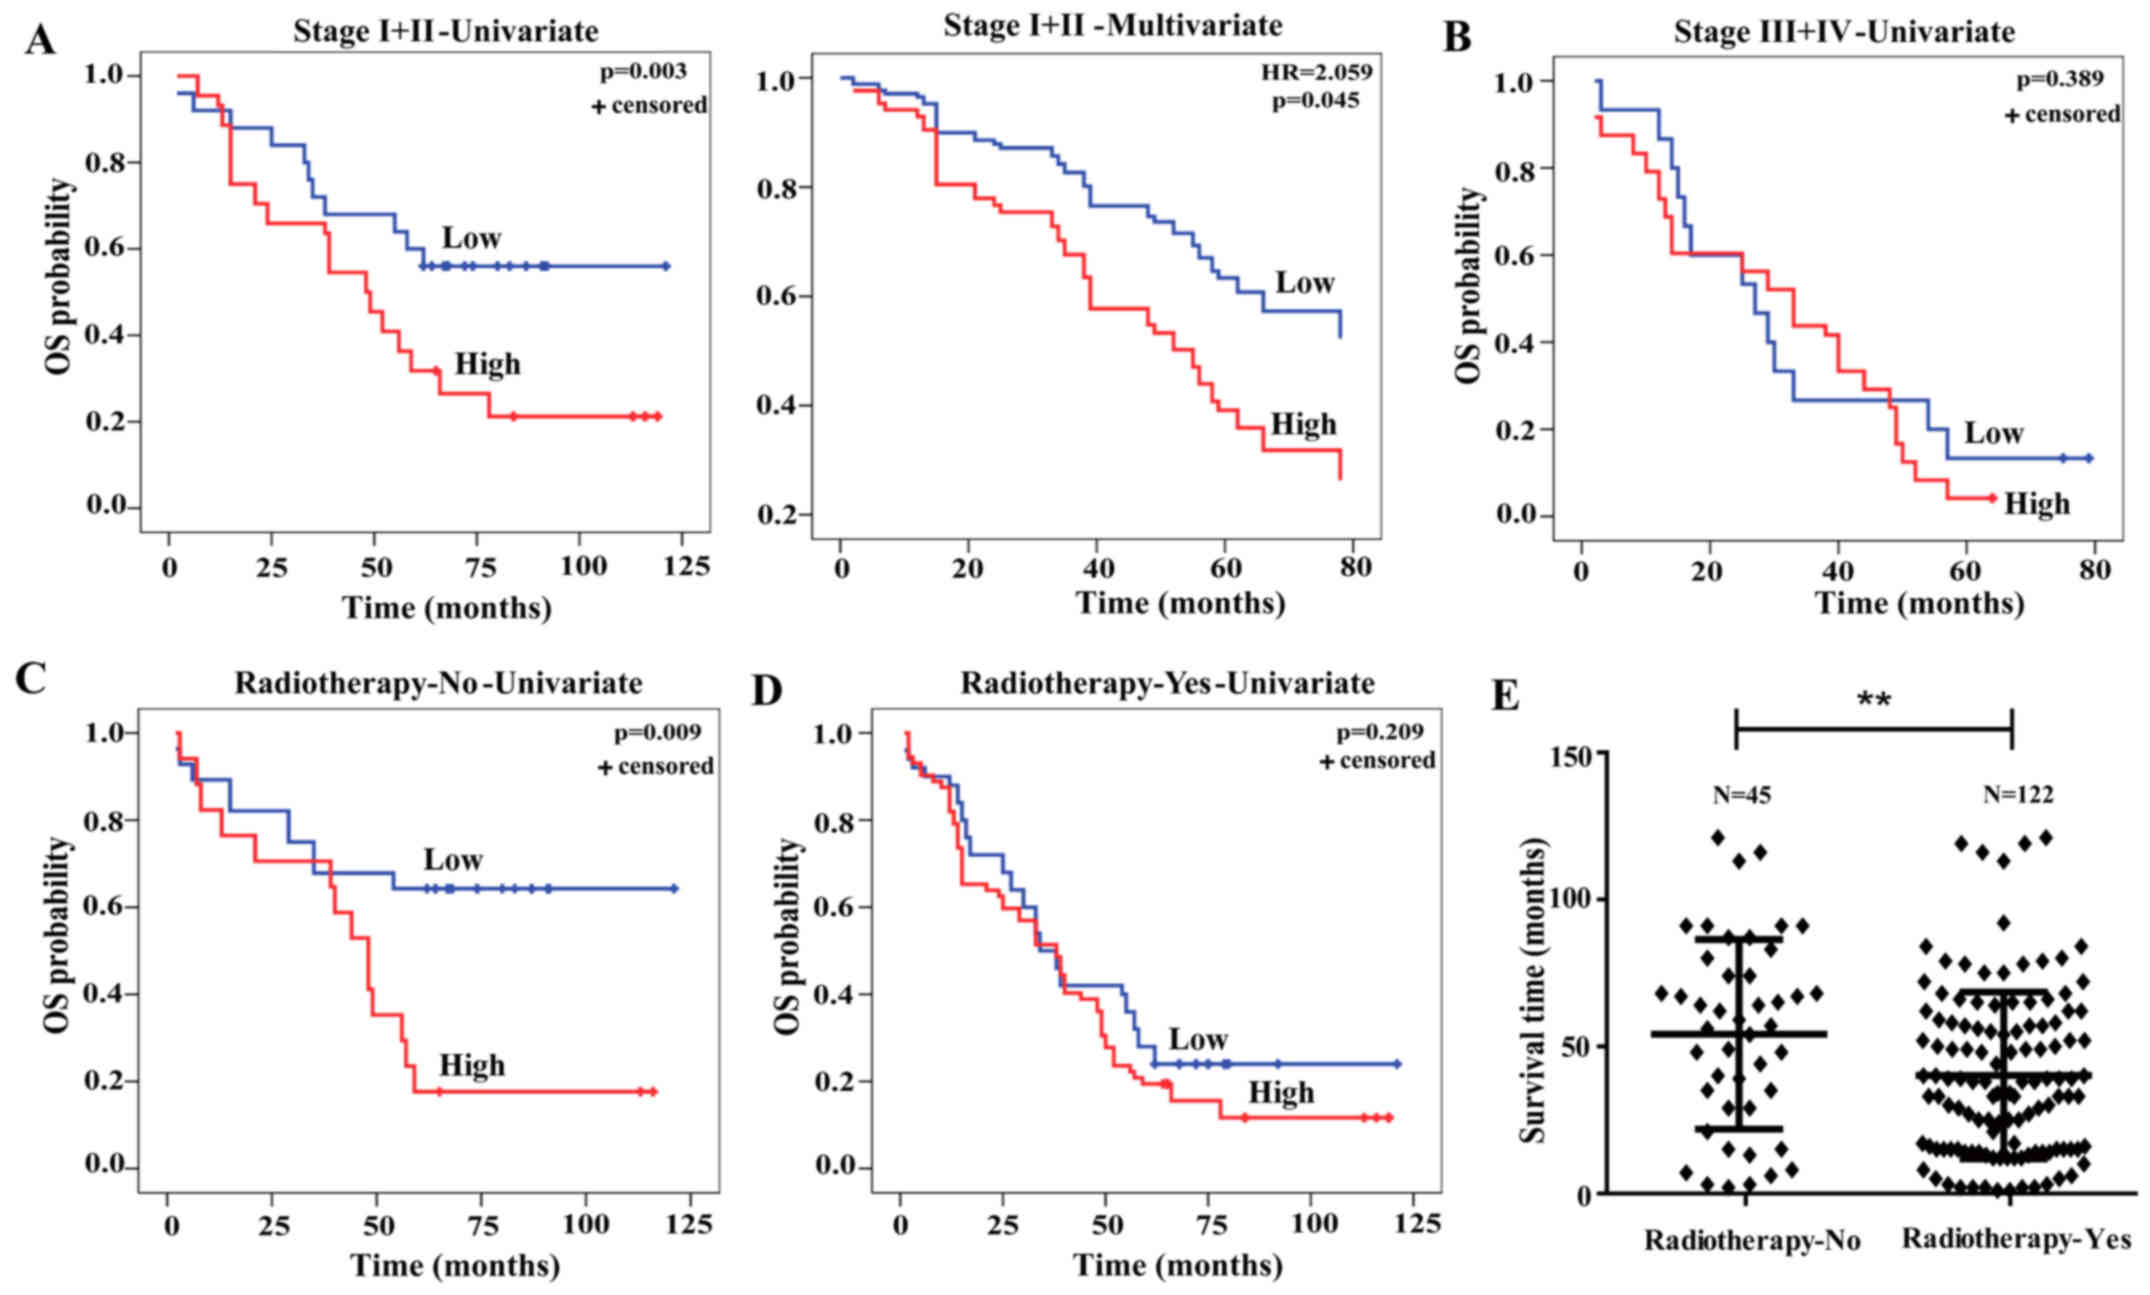 LHX3 is an early stage and radiosensitivity prognostic biomarker in